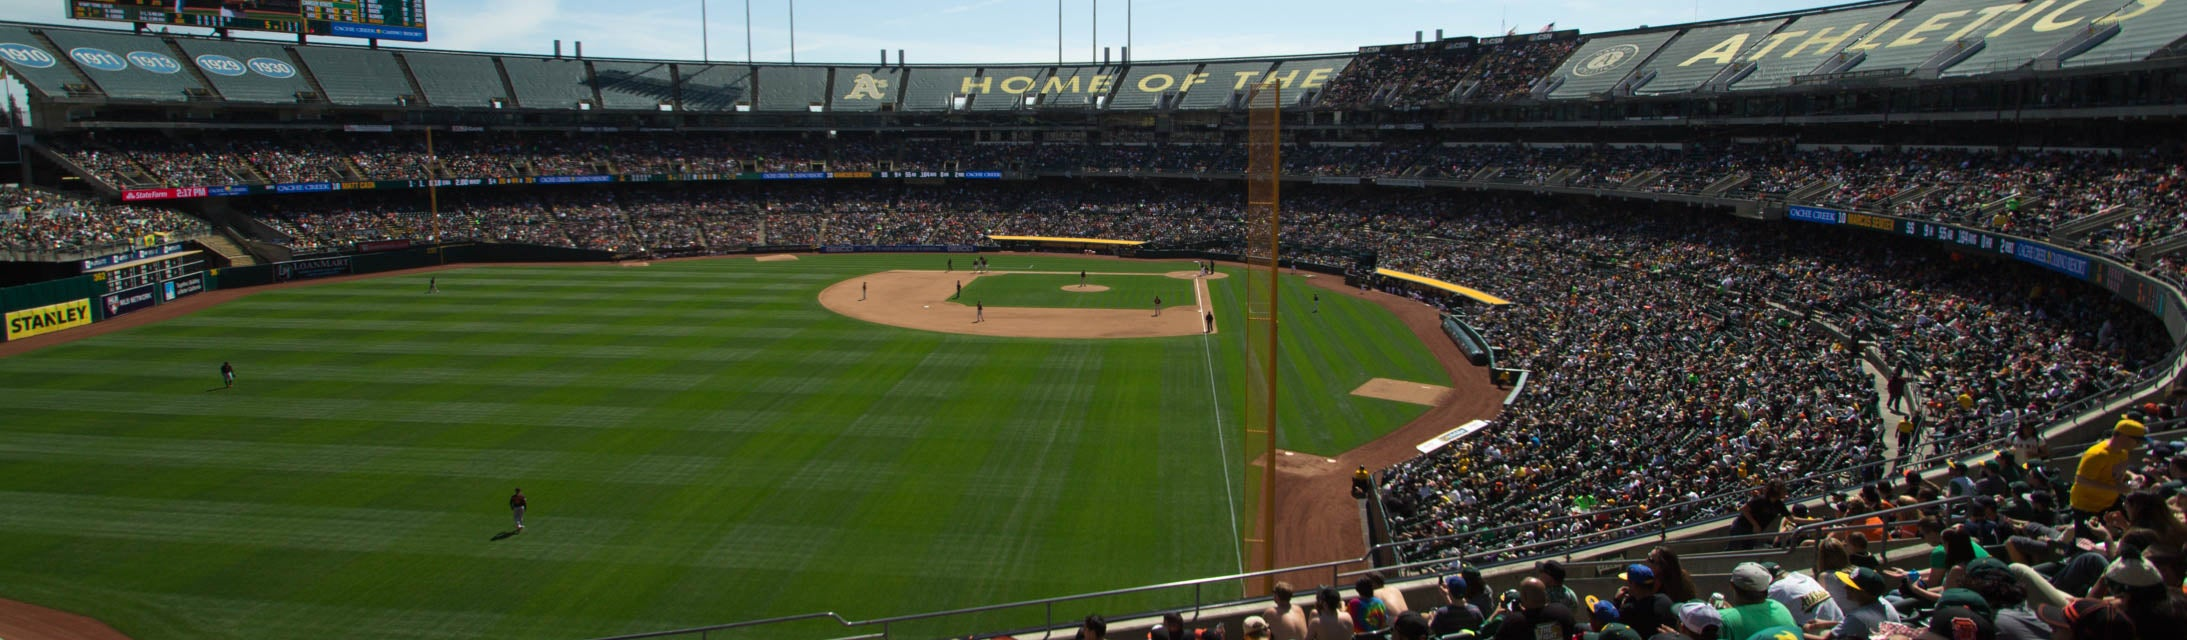 Seat view from Plaza Outfield